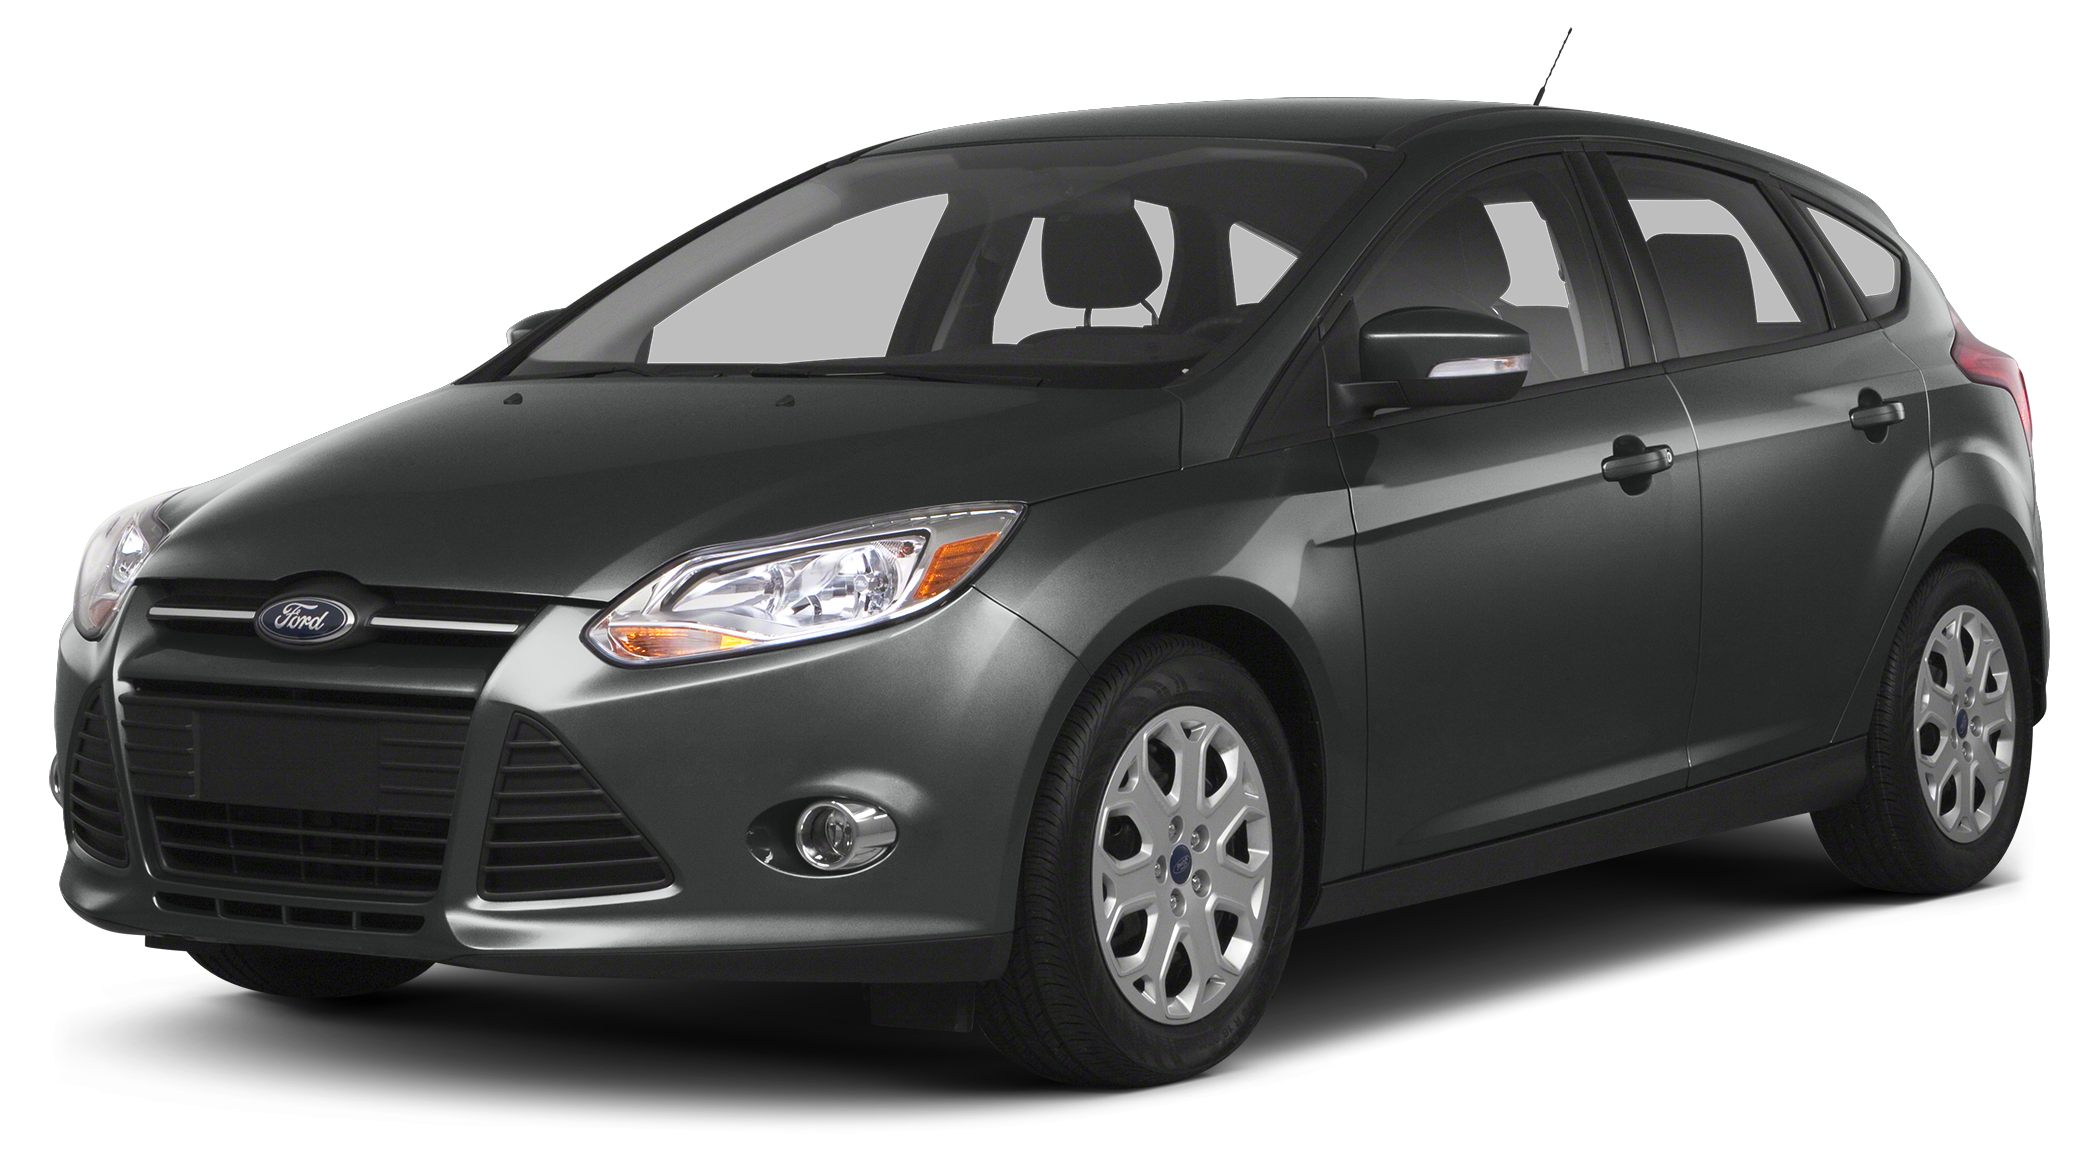 2013 Ford Focus SE This 2013 Ford Focus 4dr 5dr Hatchback SE features a 20L 4 CYLINDER 4cyl Gasol